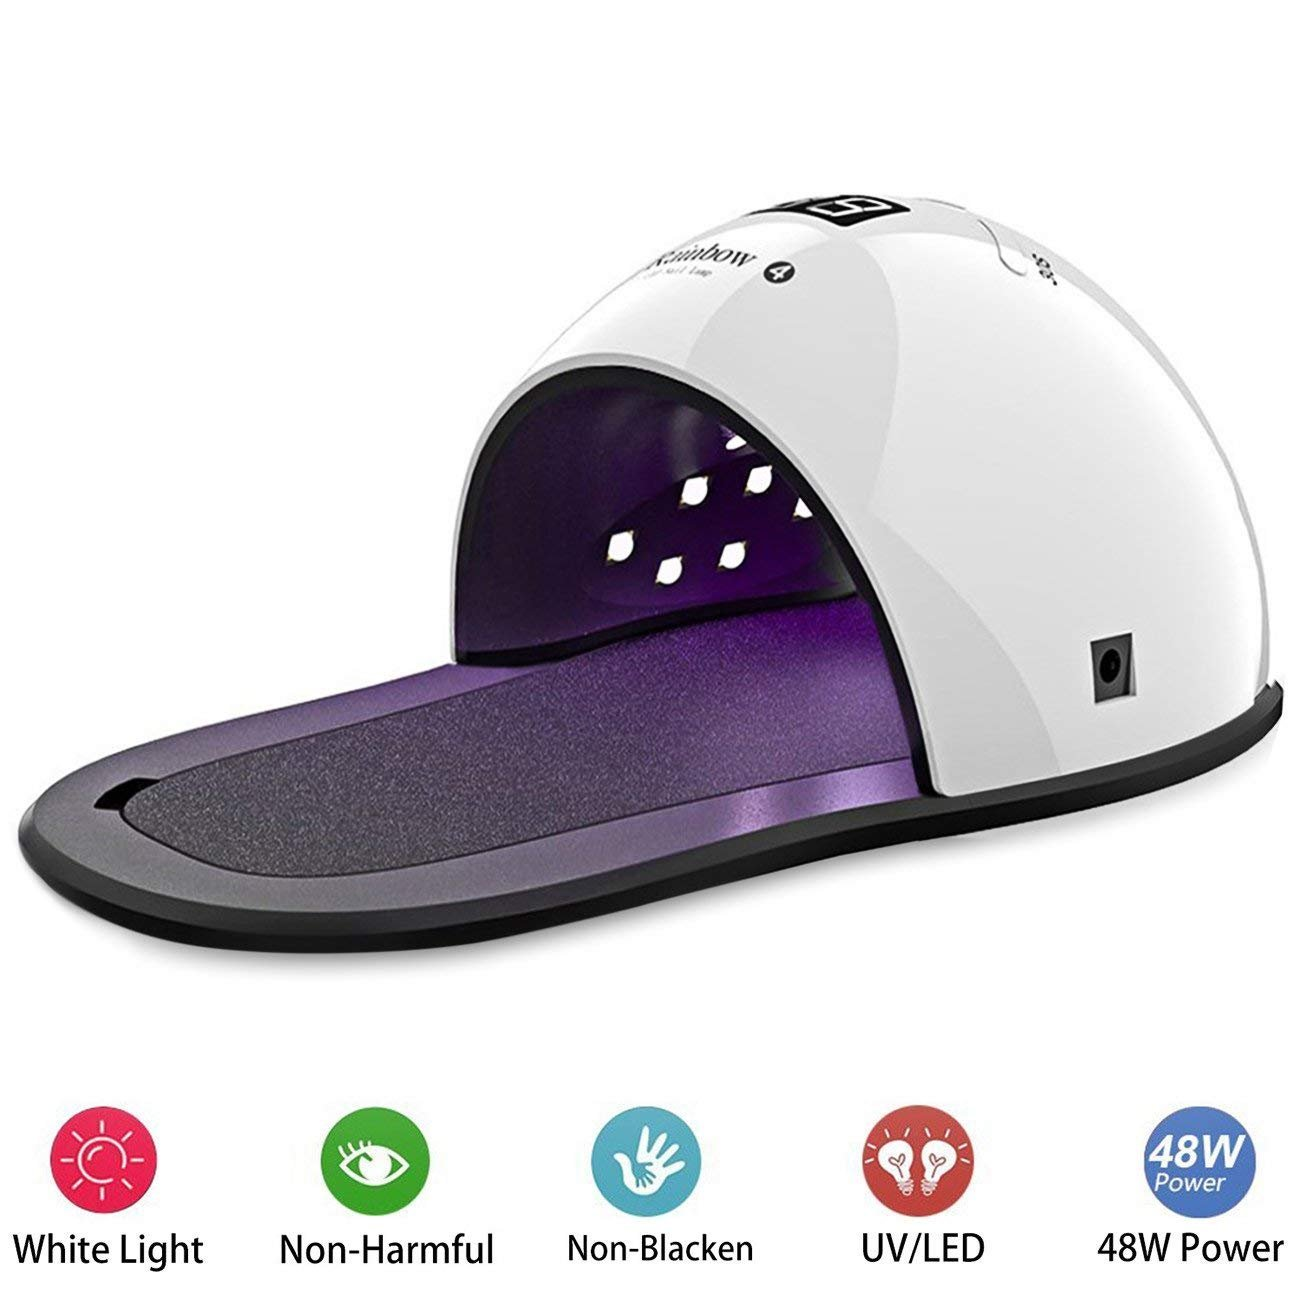 UV Nail Lamp - Kainoua Upgrade 48W UV LED Nail Dryer Curing Lamp with Dissipation Protection, Dual Light Source, Auto-Sensor, Timer Setting& Display for All Gel Nail Polish, Perfect for Home and Salon